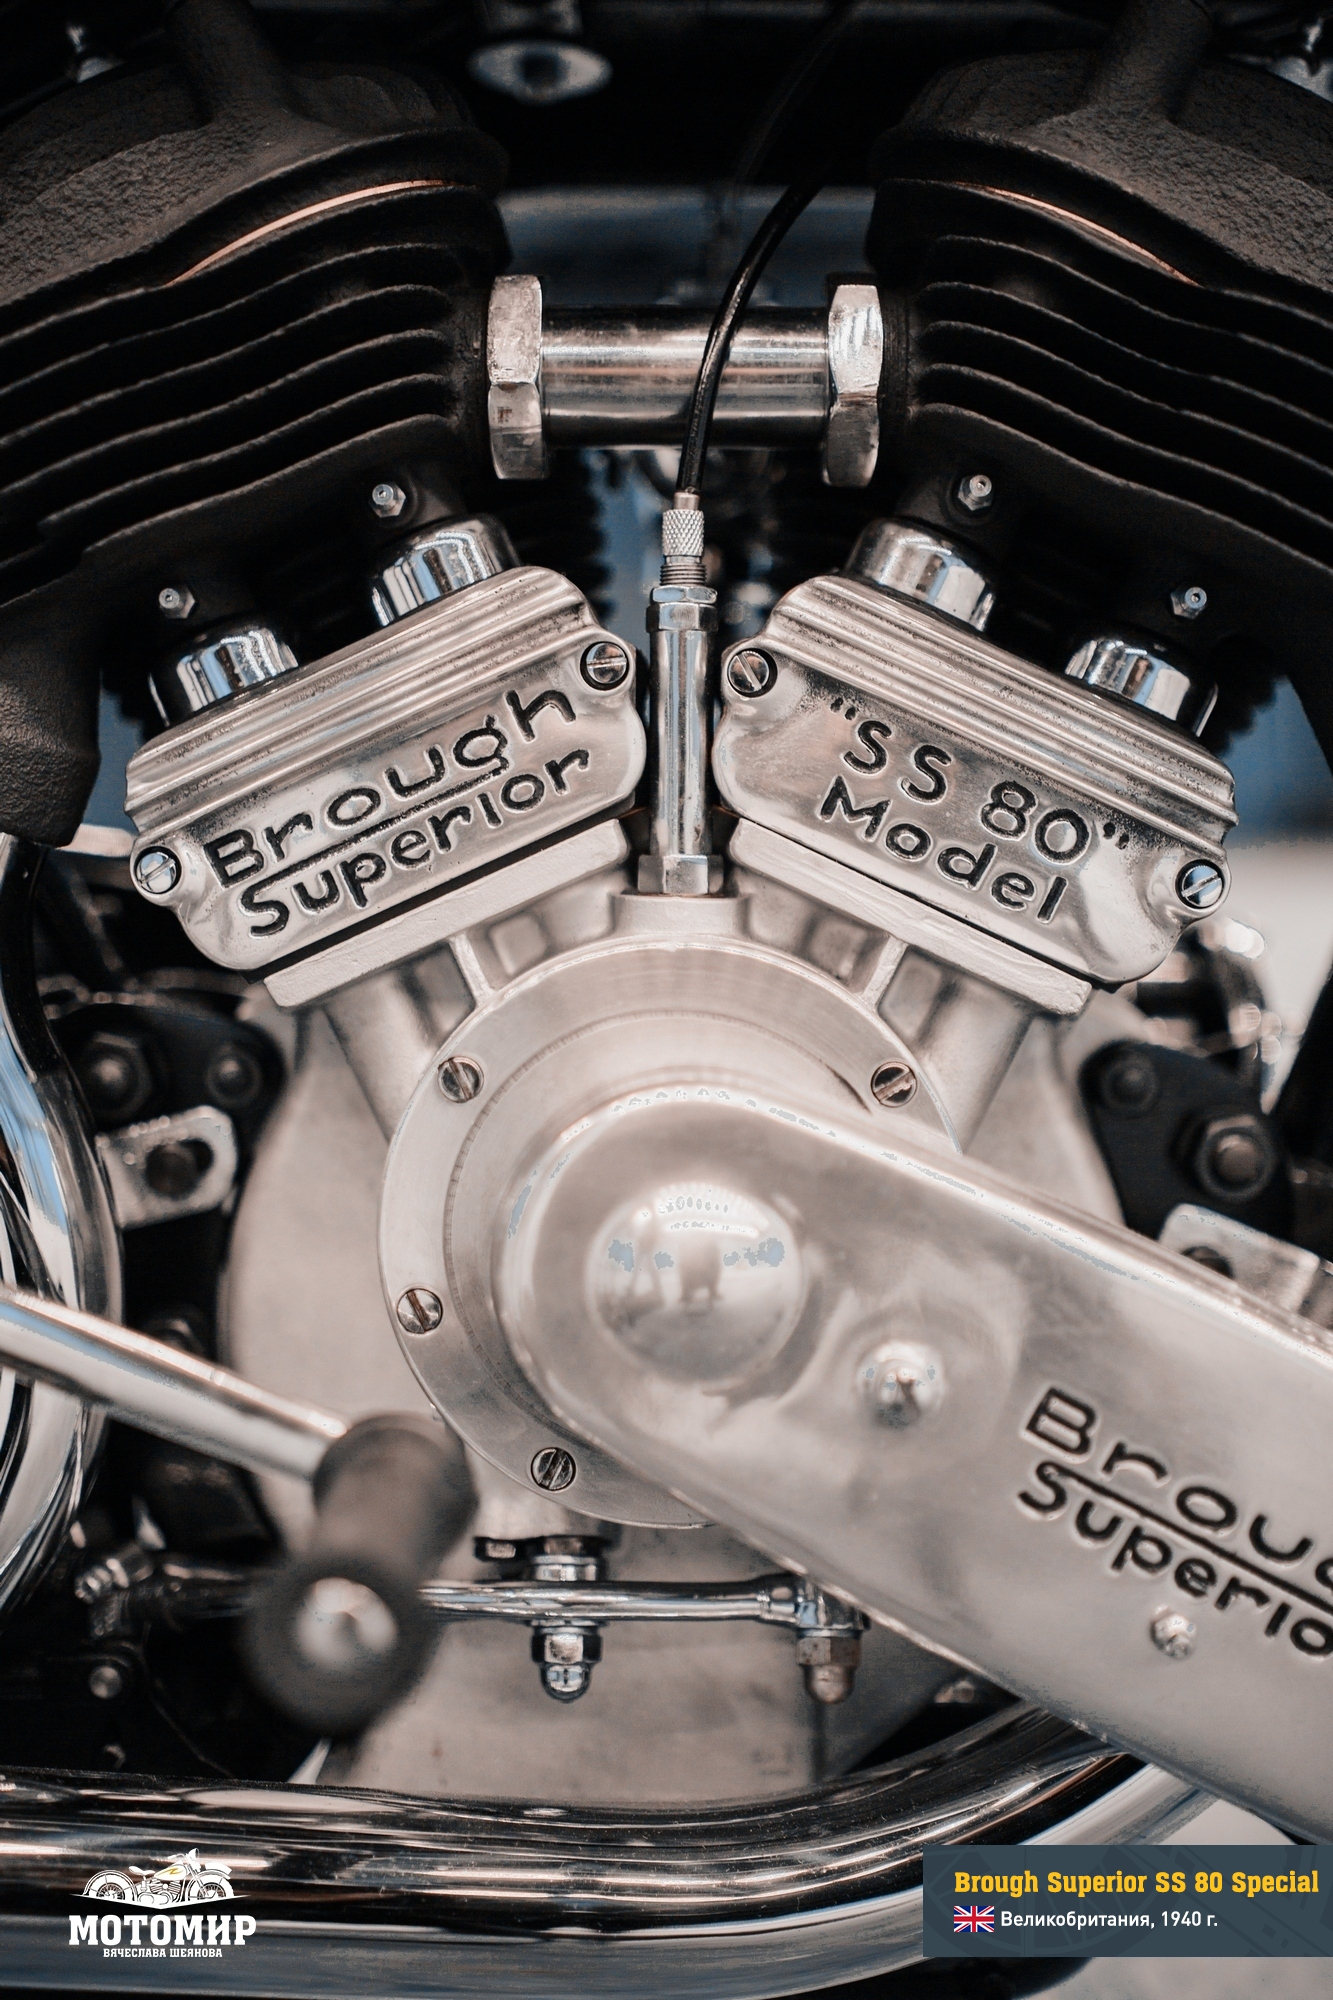 brough-superior-ss-80-201502-web-27